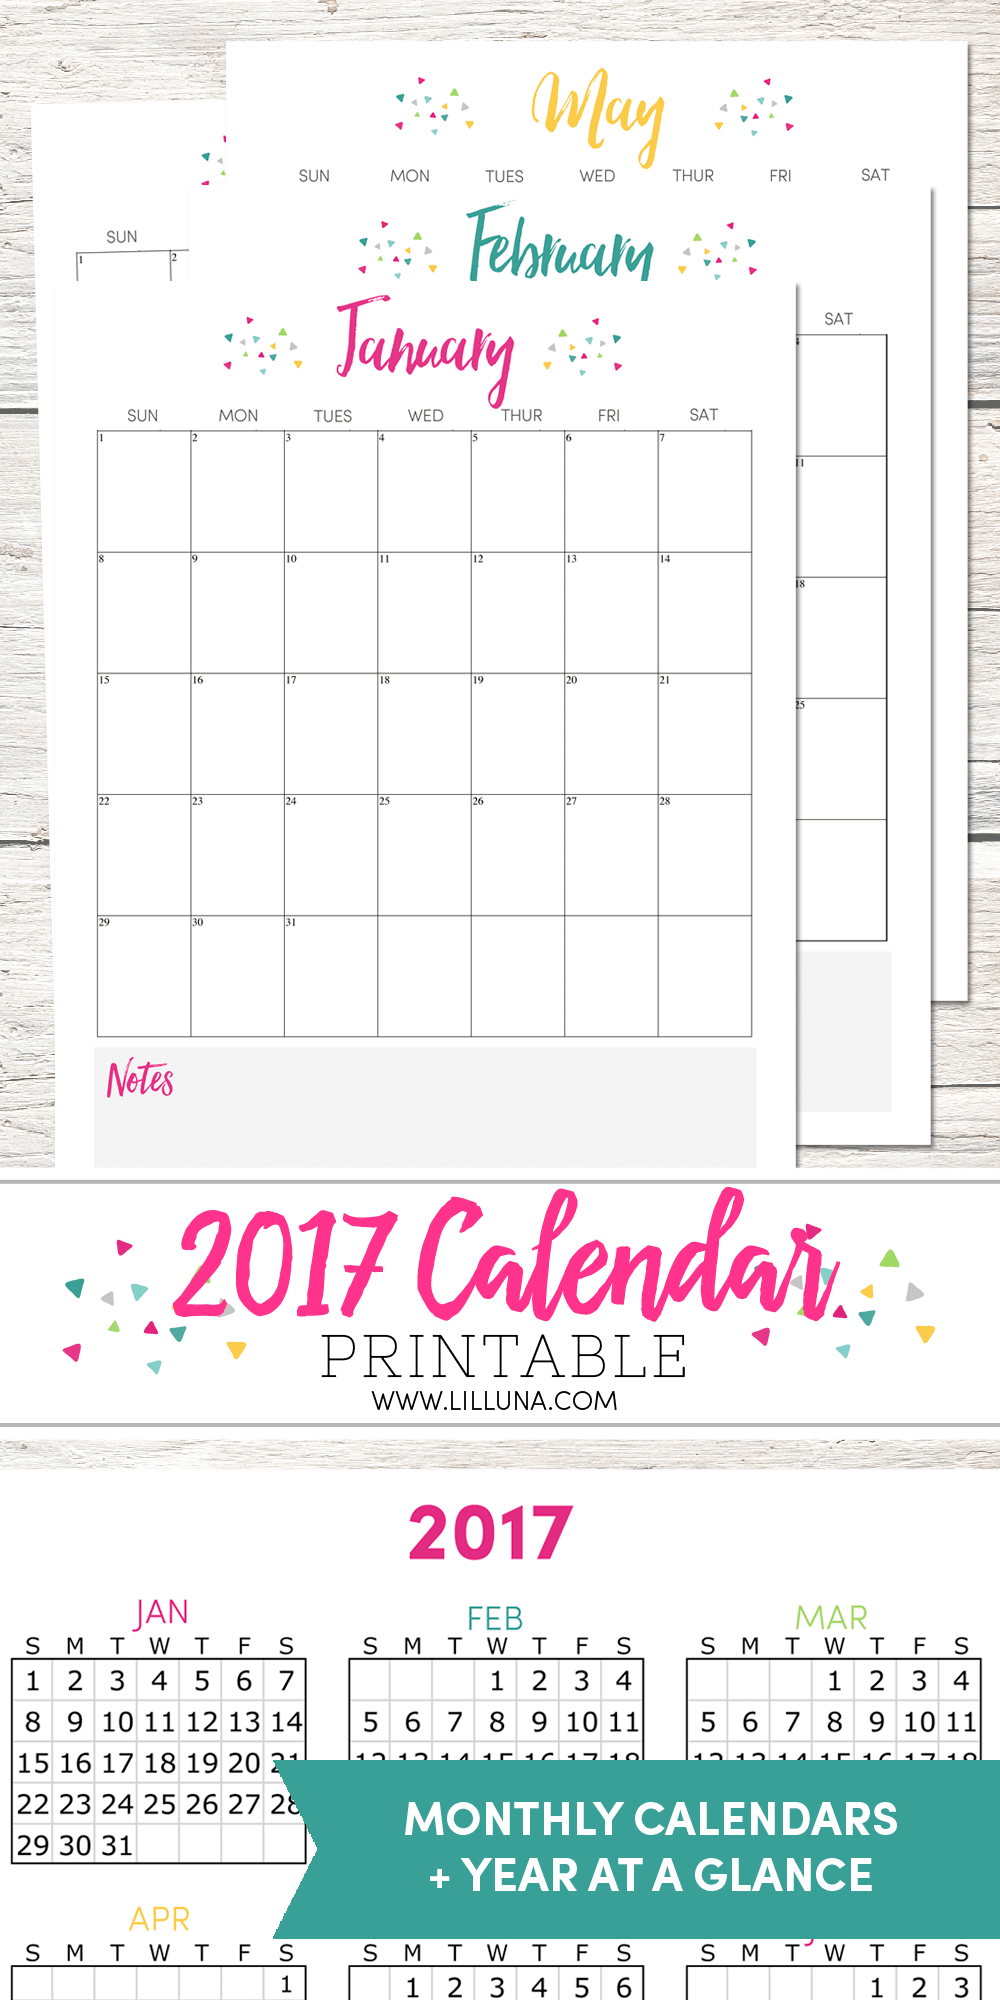 FREE 2017 Printable Calendar - even has a NOTES section on the bottom to help you be organized in the new year.